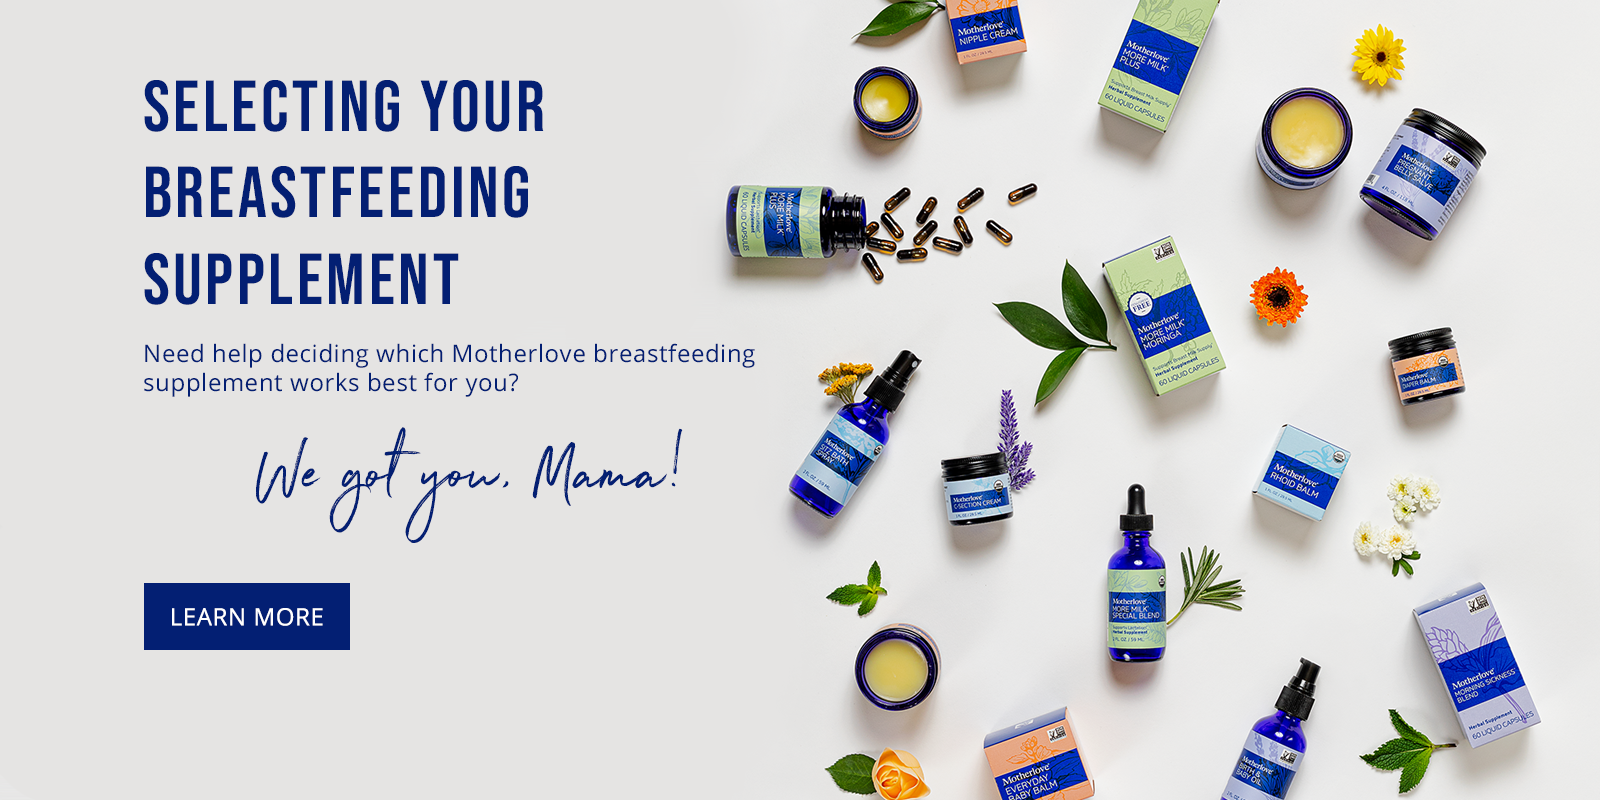 How to select your Motherlove breastfeeding supplement